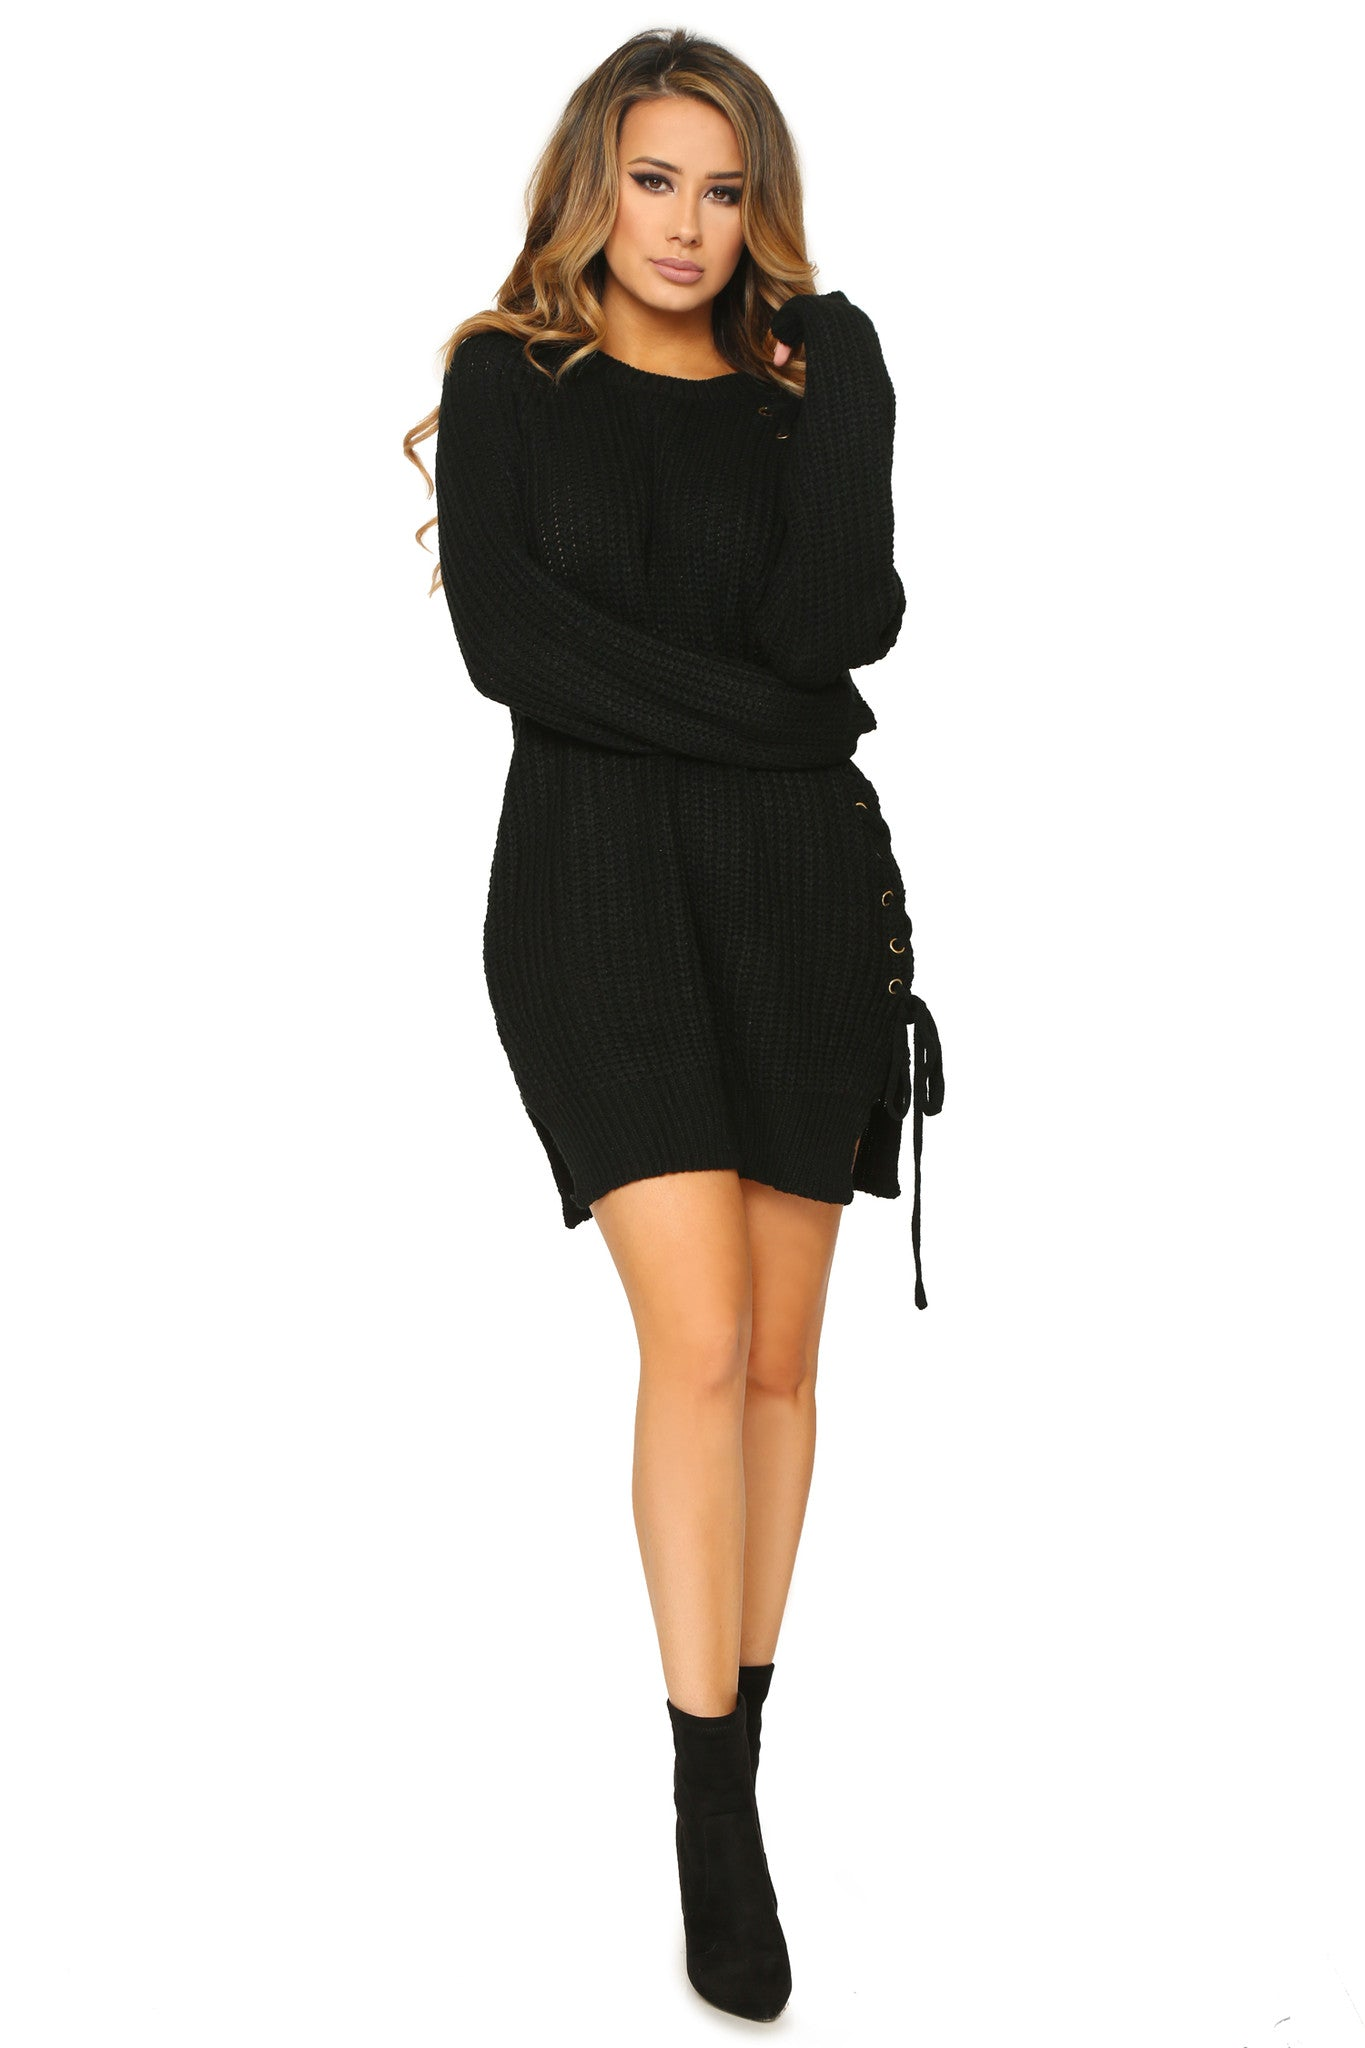 TAMIA SWEATER DRESS - Glam Envy - 1